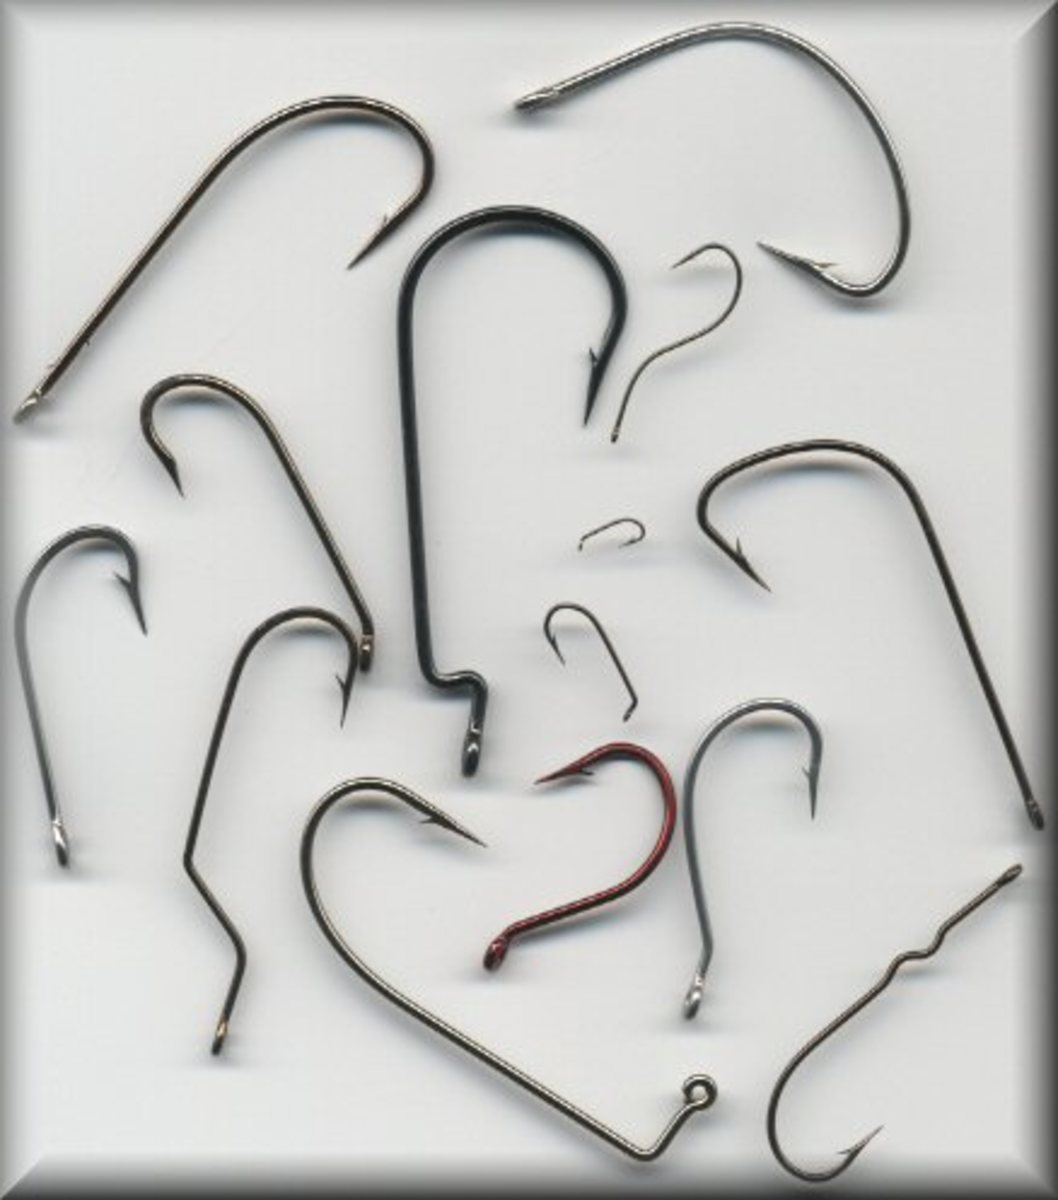 Shapes and Sizes of Fishing Hooks